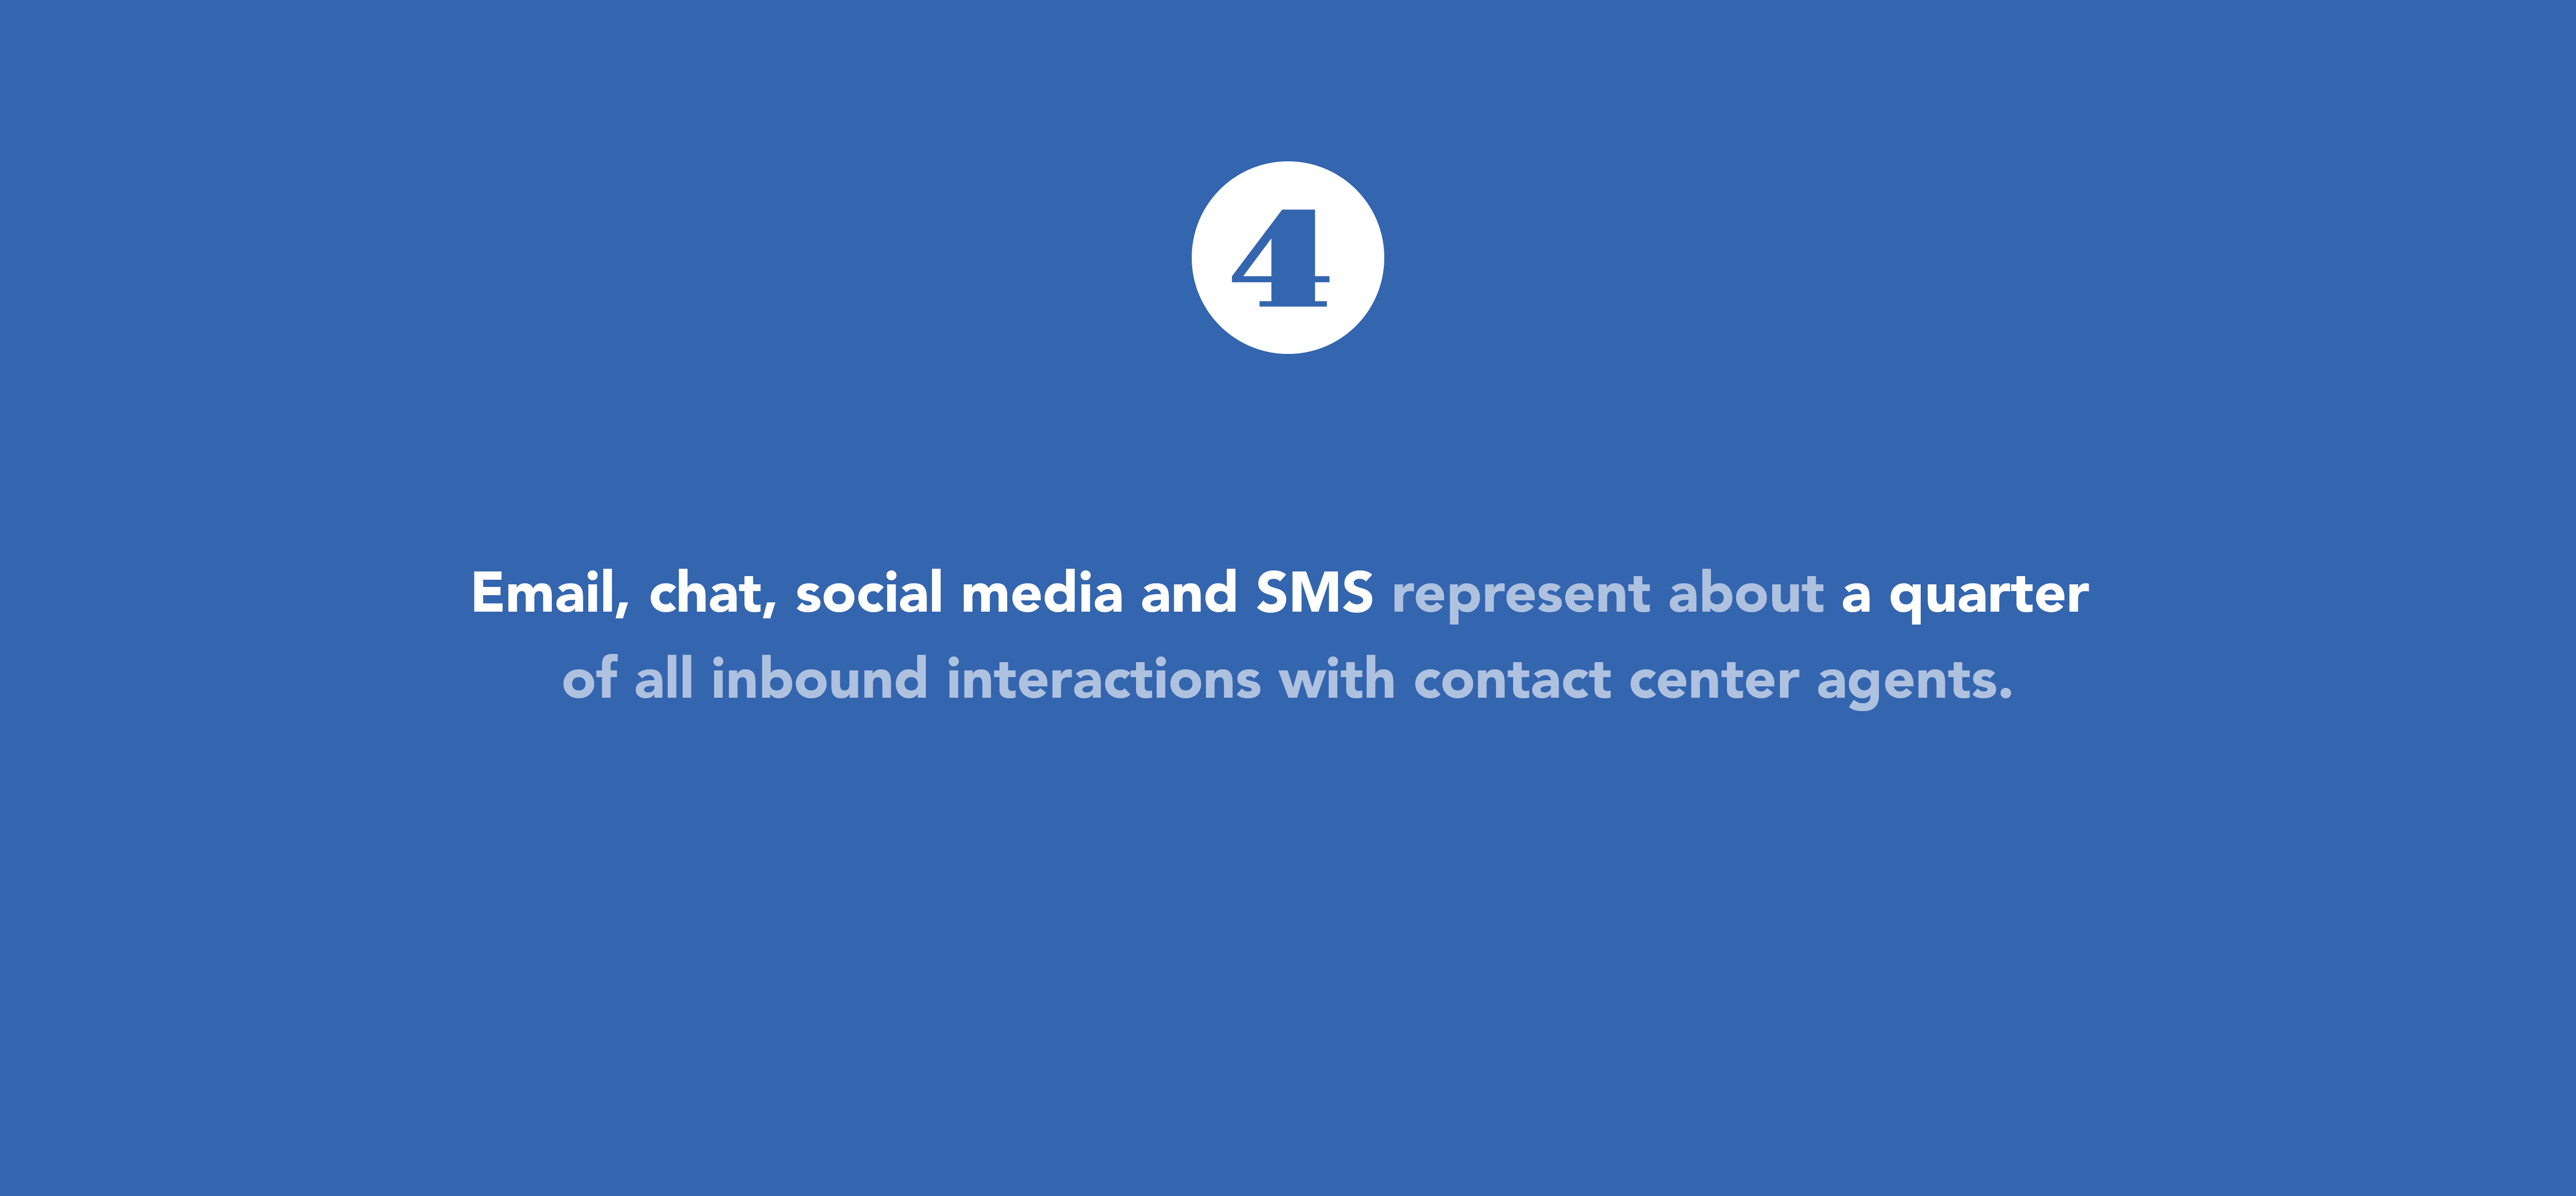 email, chat, social represent about 25 percent of customer service interactions